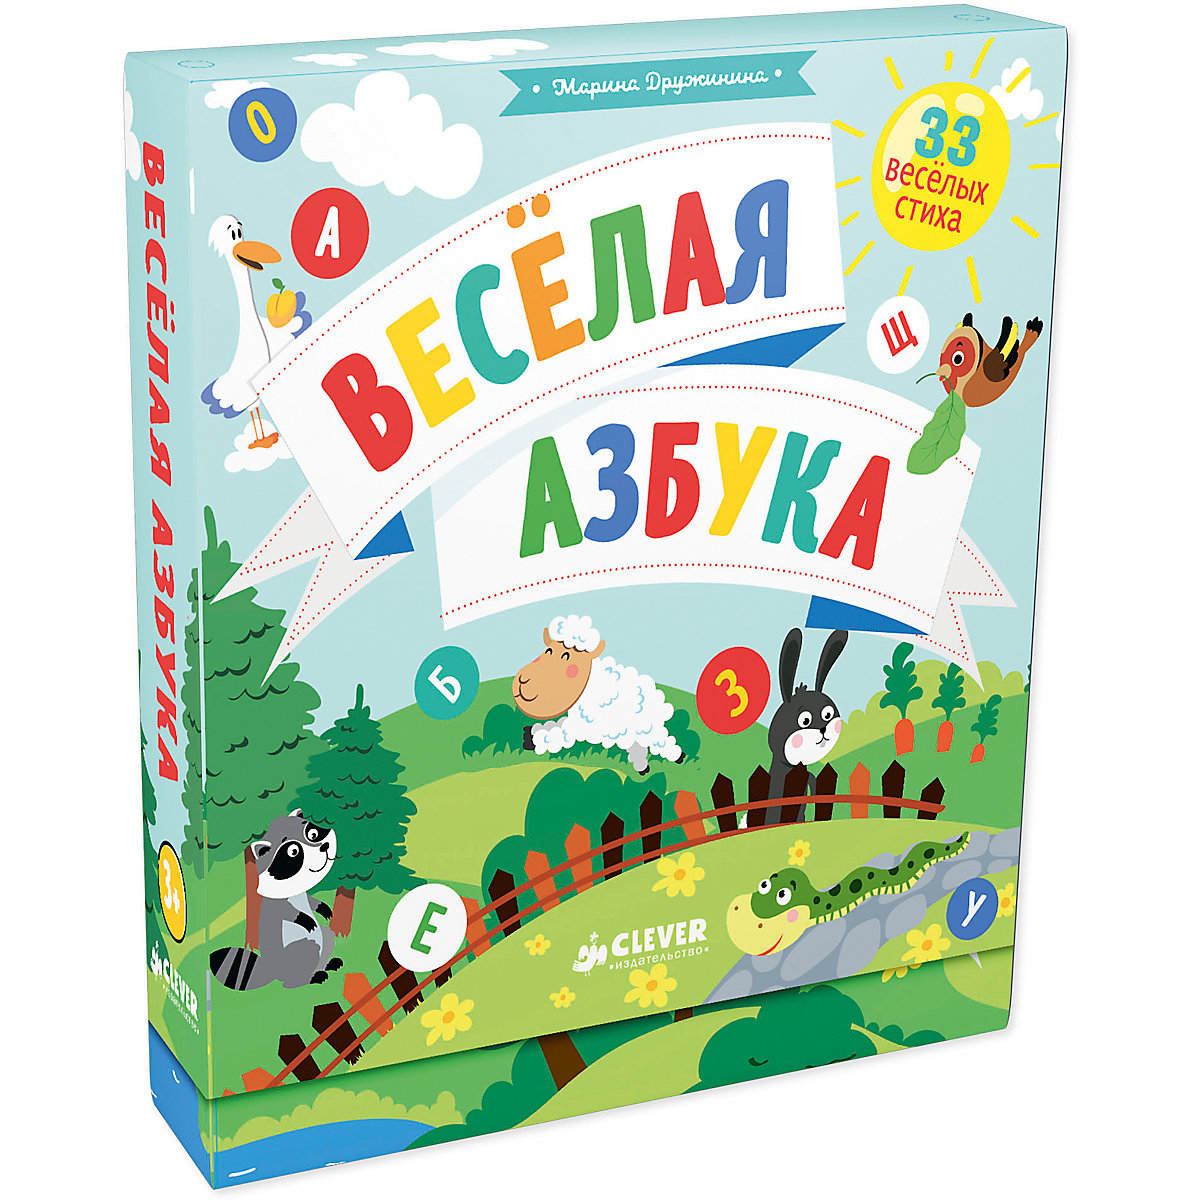 Books CLEVER 9485715 Children Education Encyclopedia Alphabet Dictionary Book For Baby MTpromo